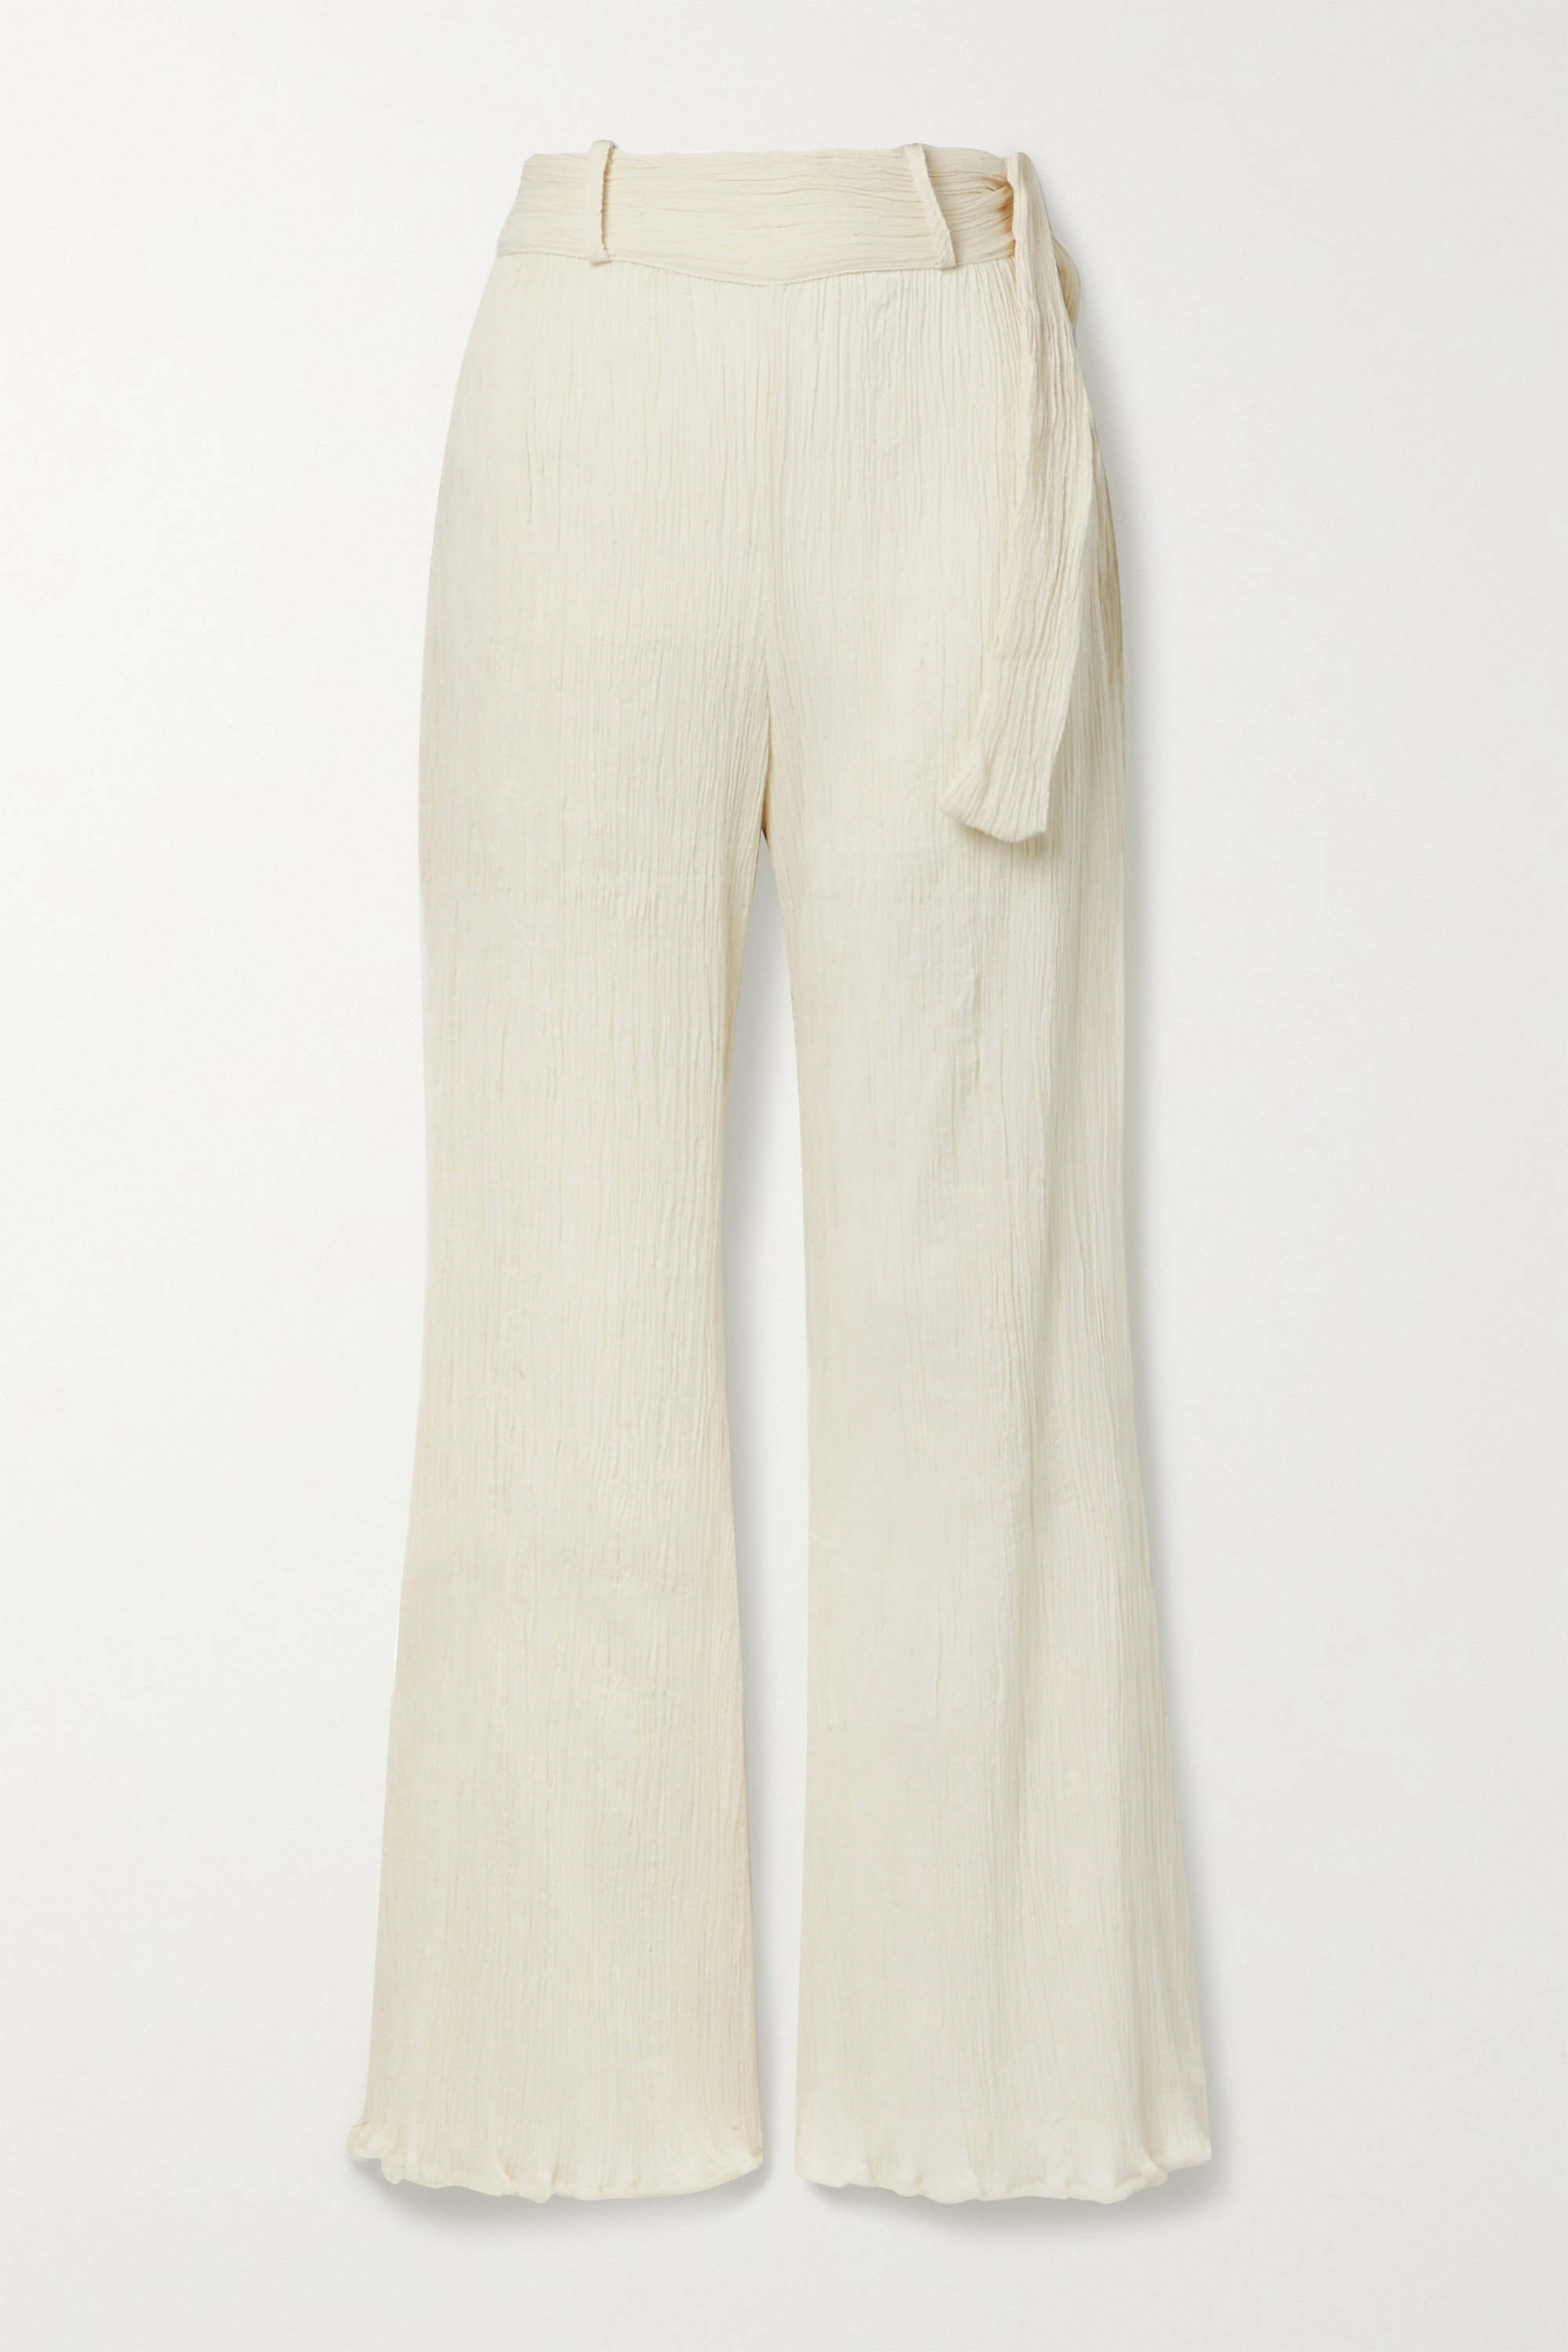 Savannah Morrow The Label + NET SUSTAIN Eve crinkled organic cotton-gauze flared pants